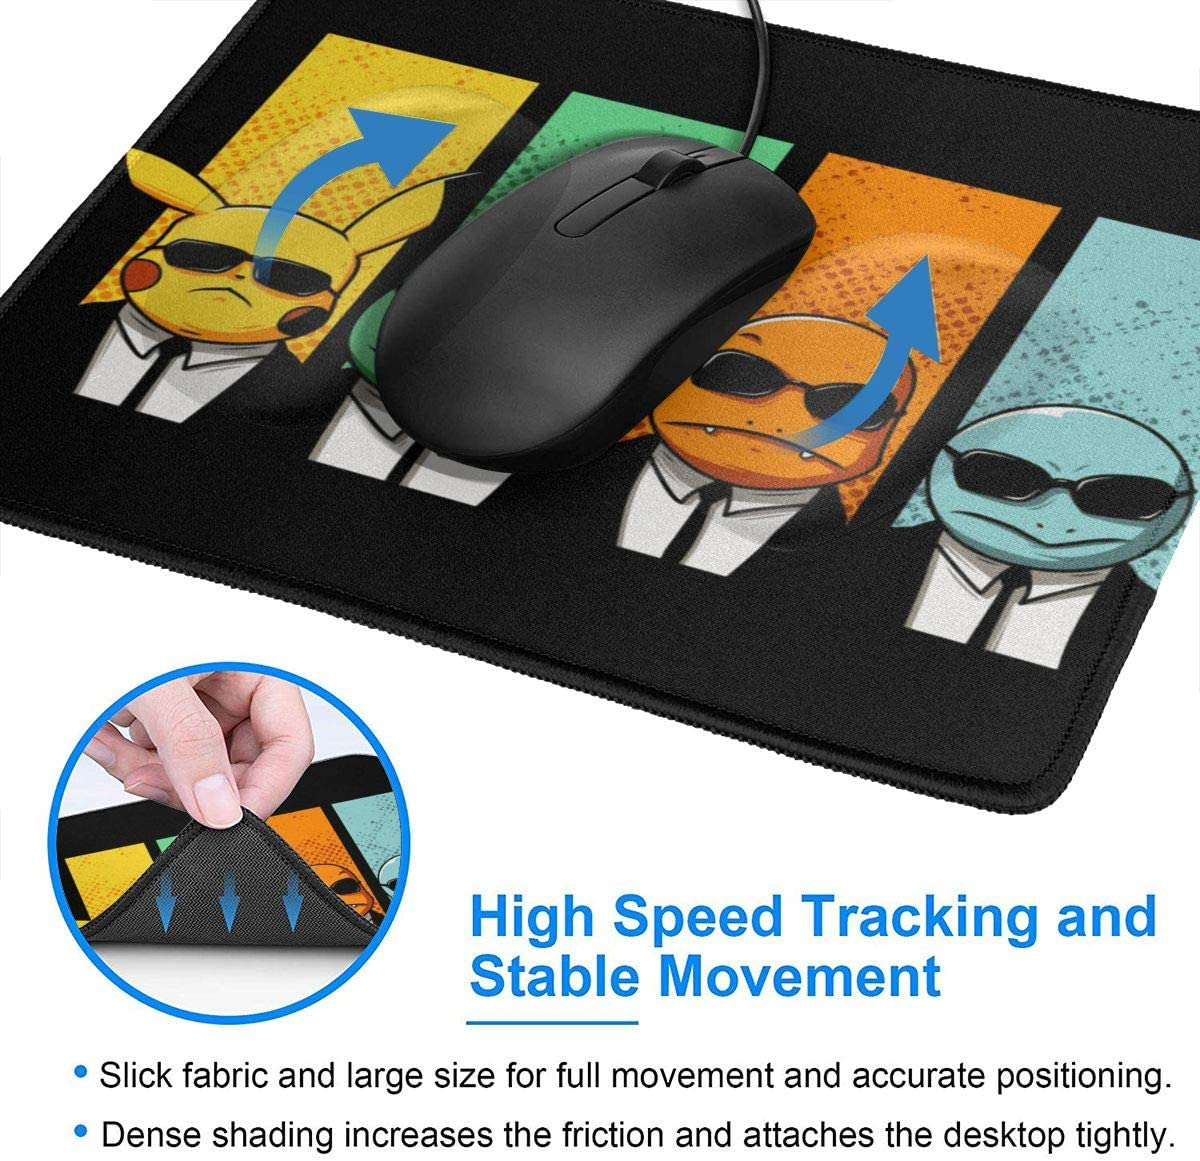 Design Mouse Pad Anti Slip Future Diary Gasai Yuno Yandere Gaming Mouse Pad with Stitched Edge Computer PC Mousepad Rubber Base for Office Home